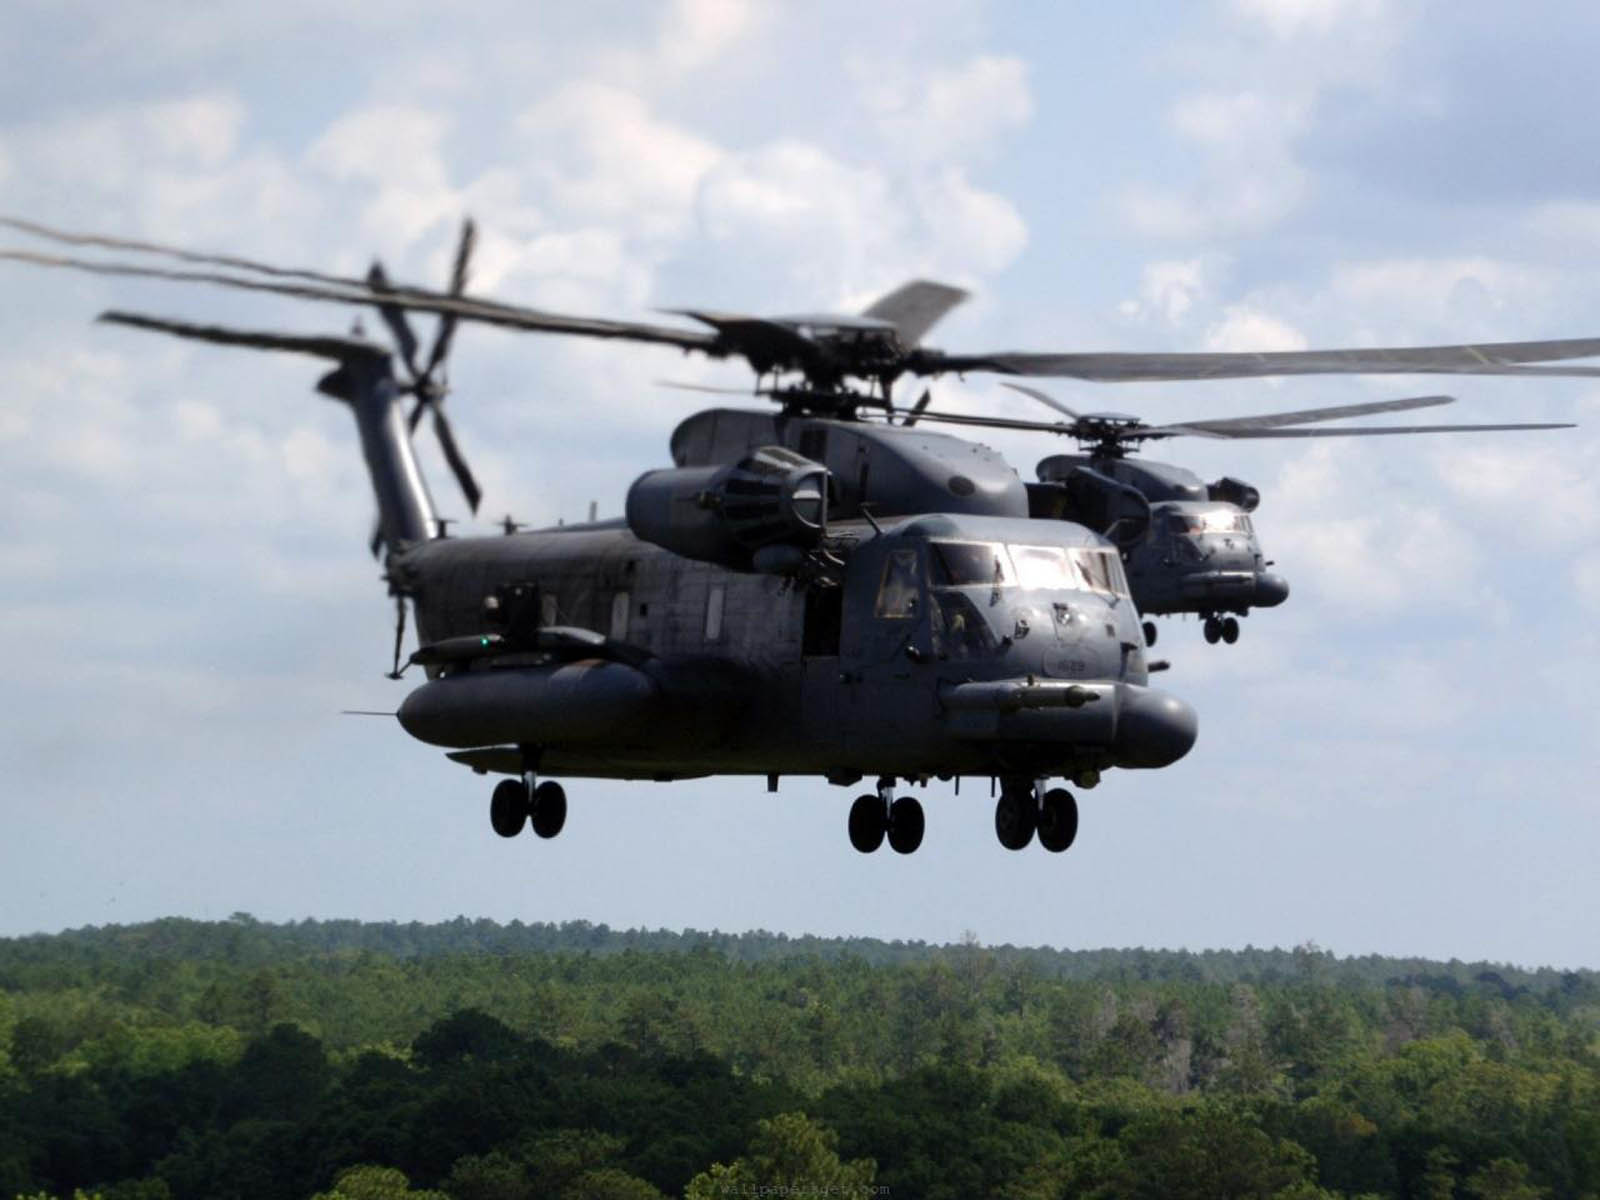 3d Car Wallpaper For Laptop Wallpapers Mh 53 Pave Low Helicopter Wallpapers